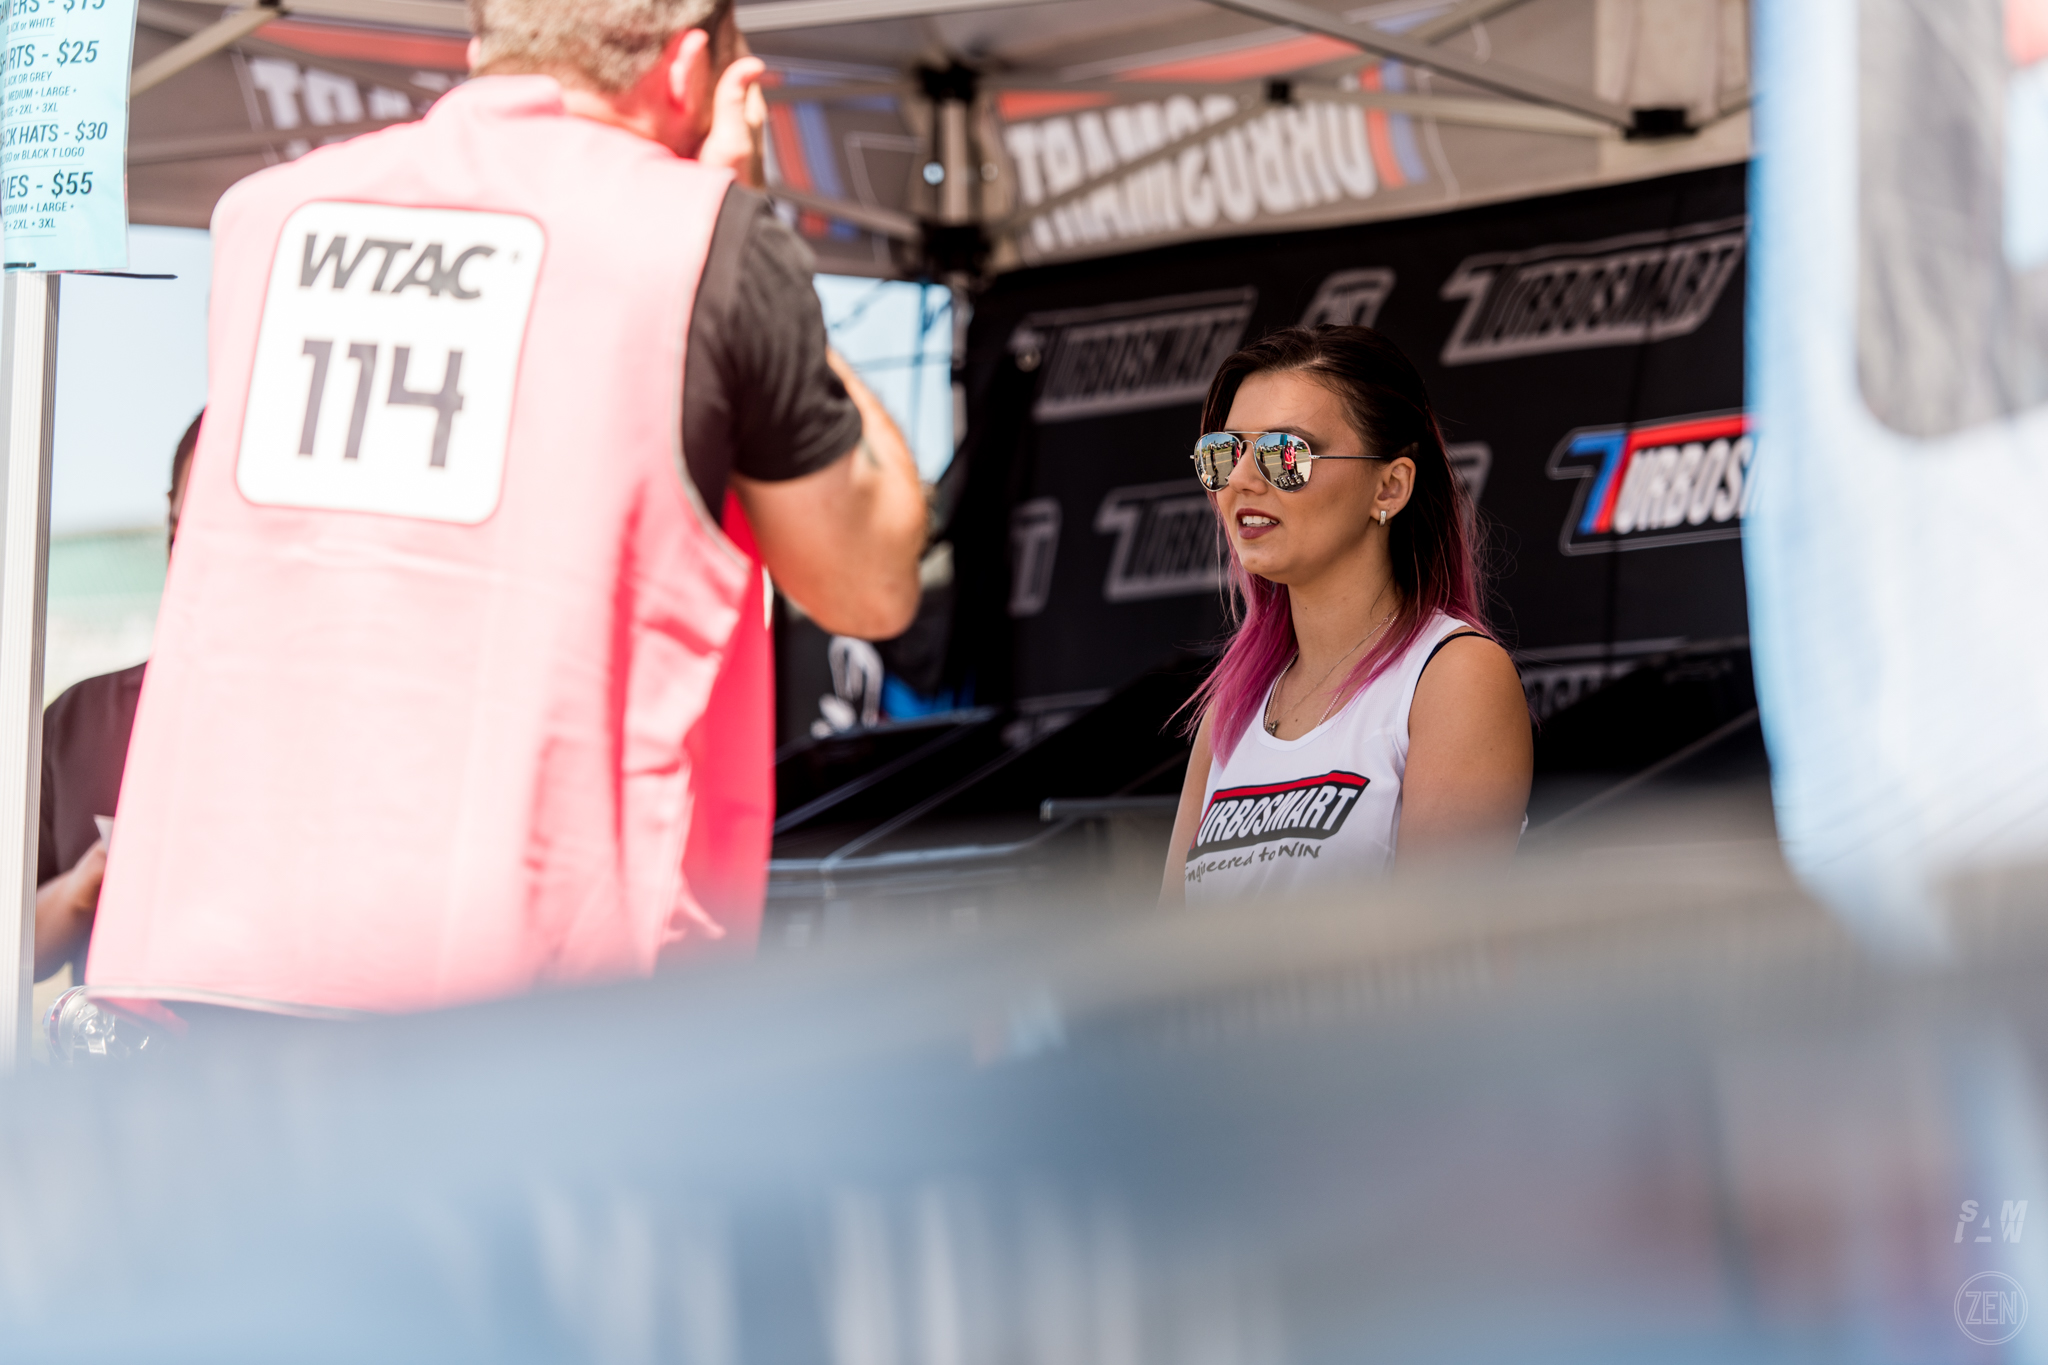 2019-10-18 - WTAC Day 01 037